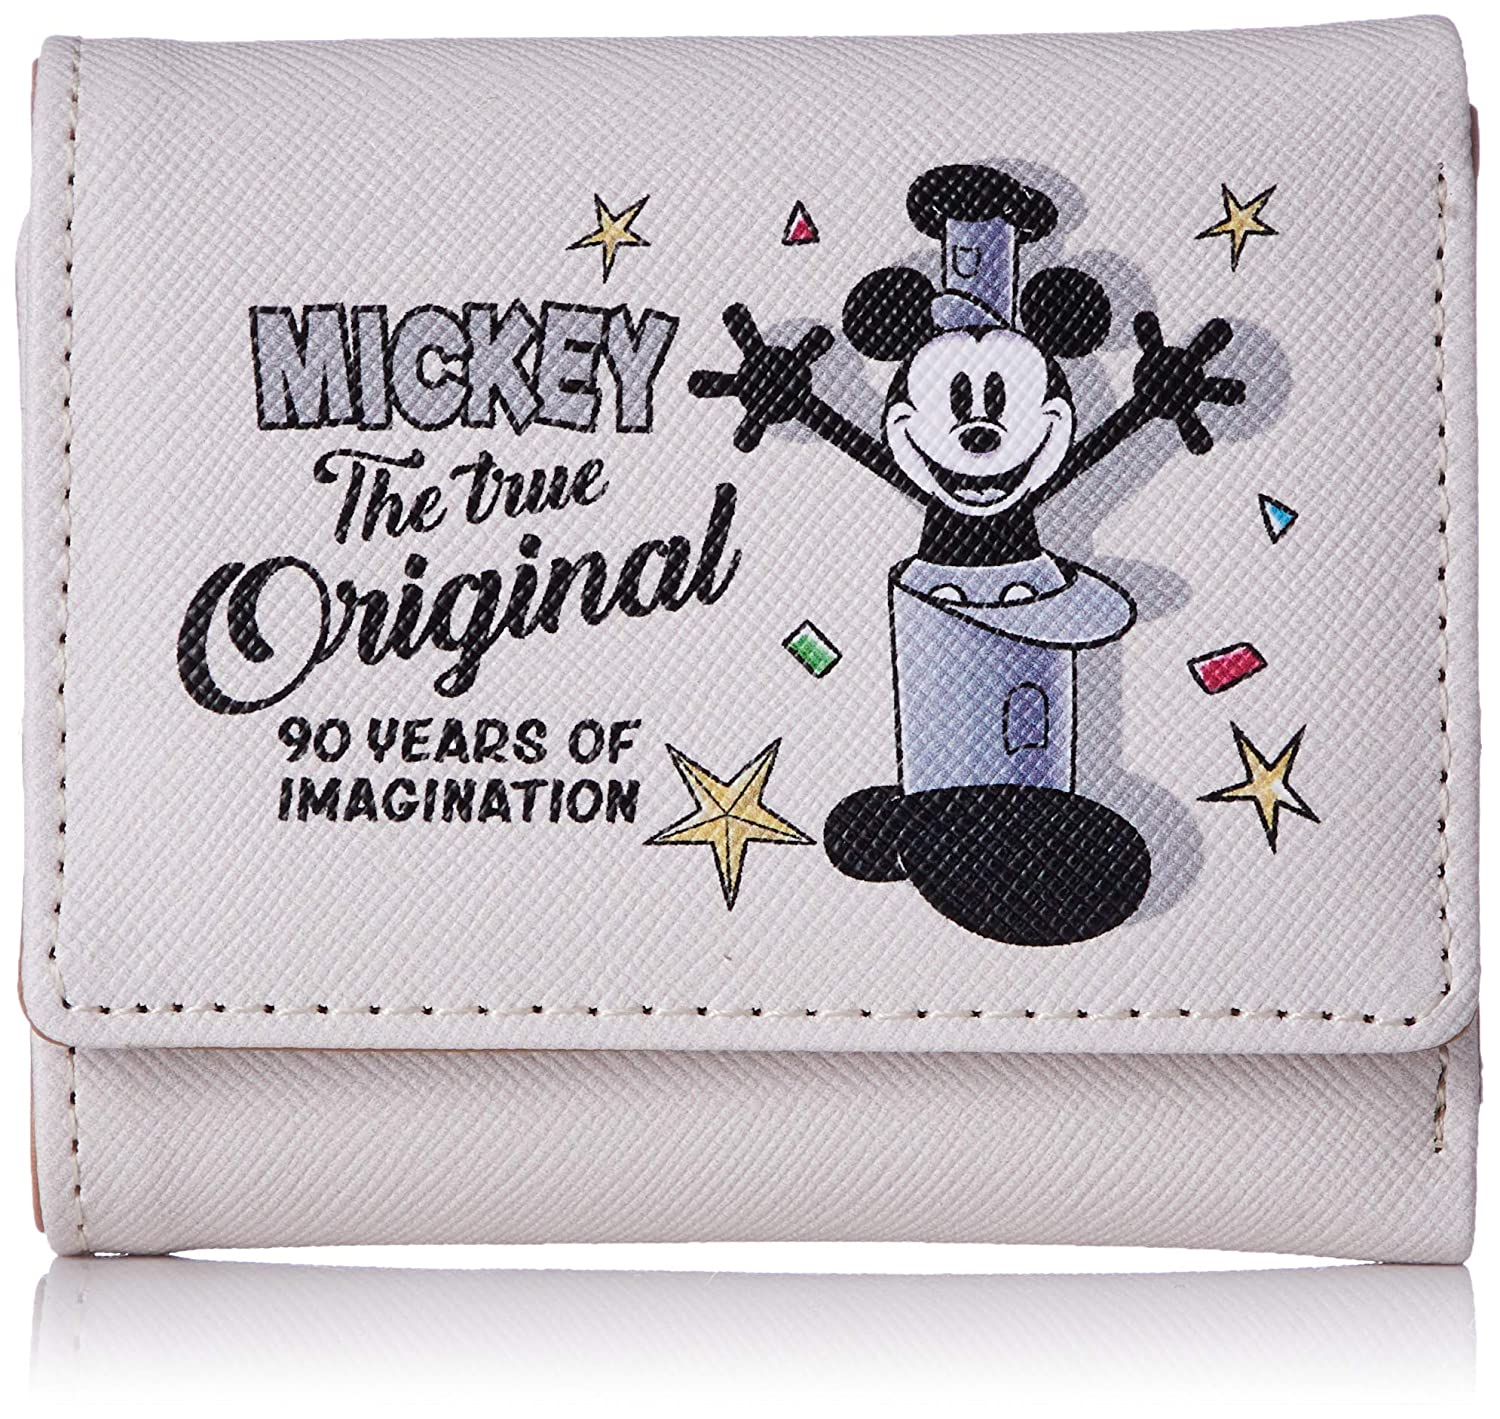 Purse: Womens Mickey Mouse tri-fold wallet /s 90th ...